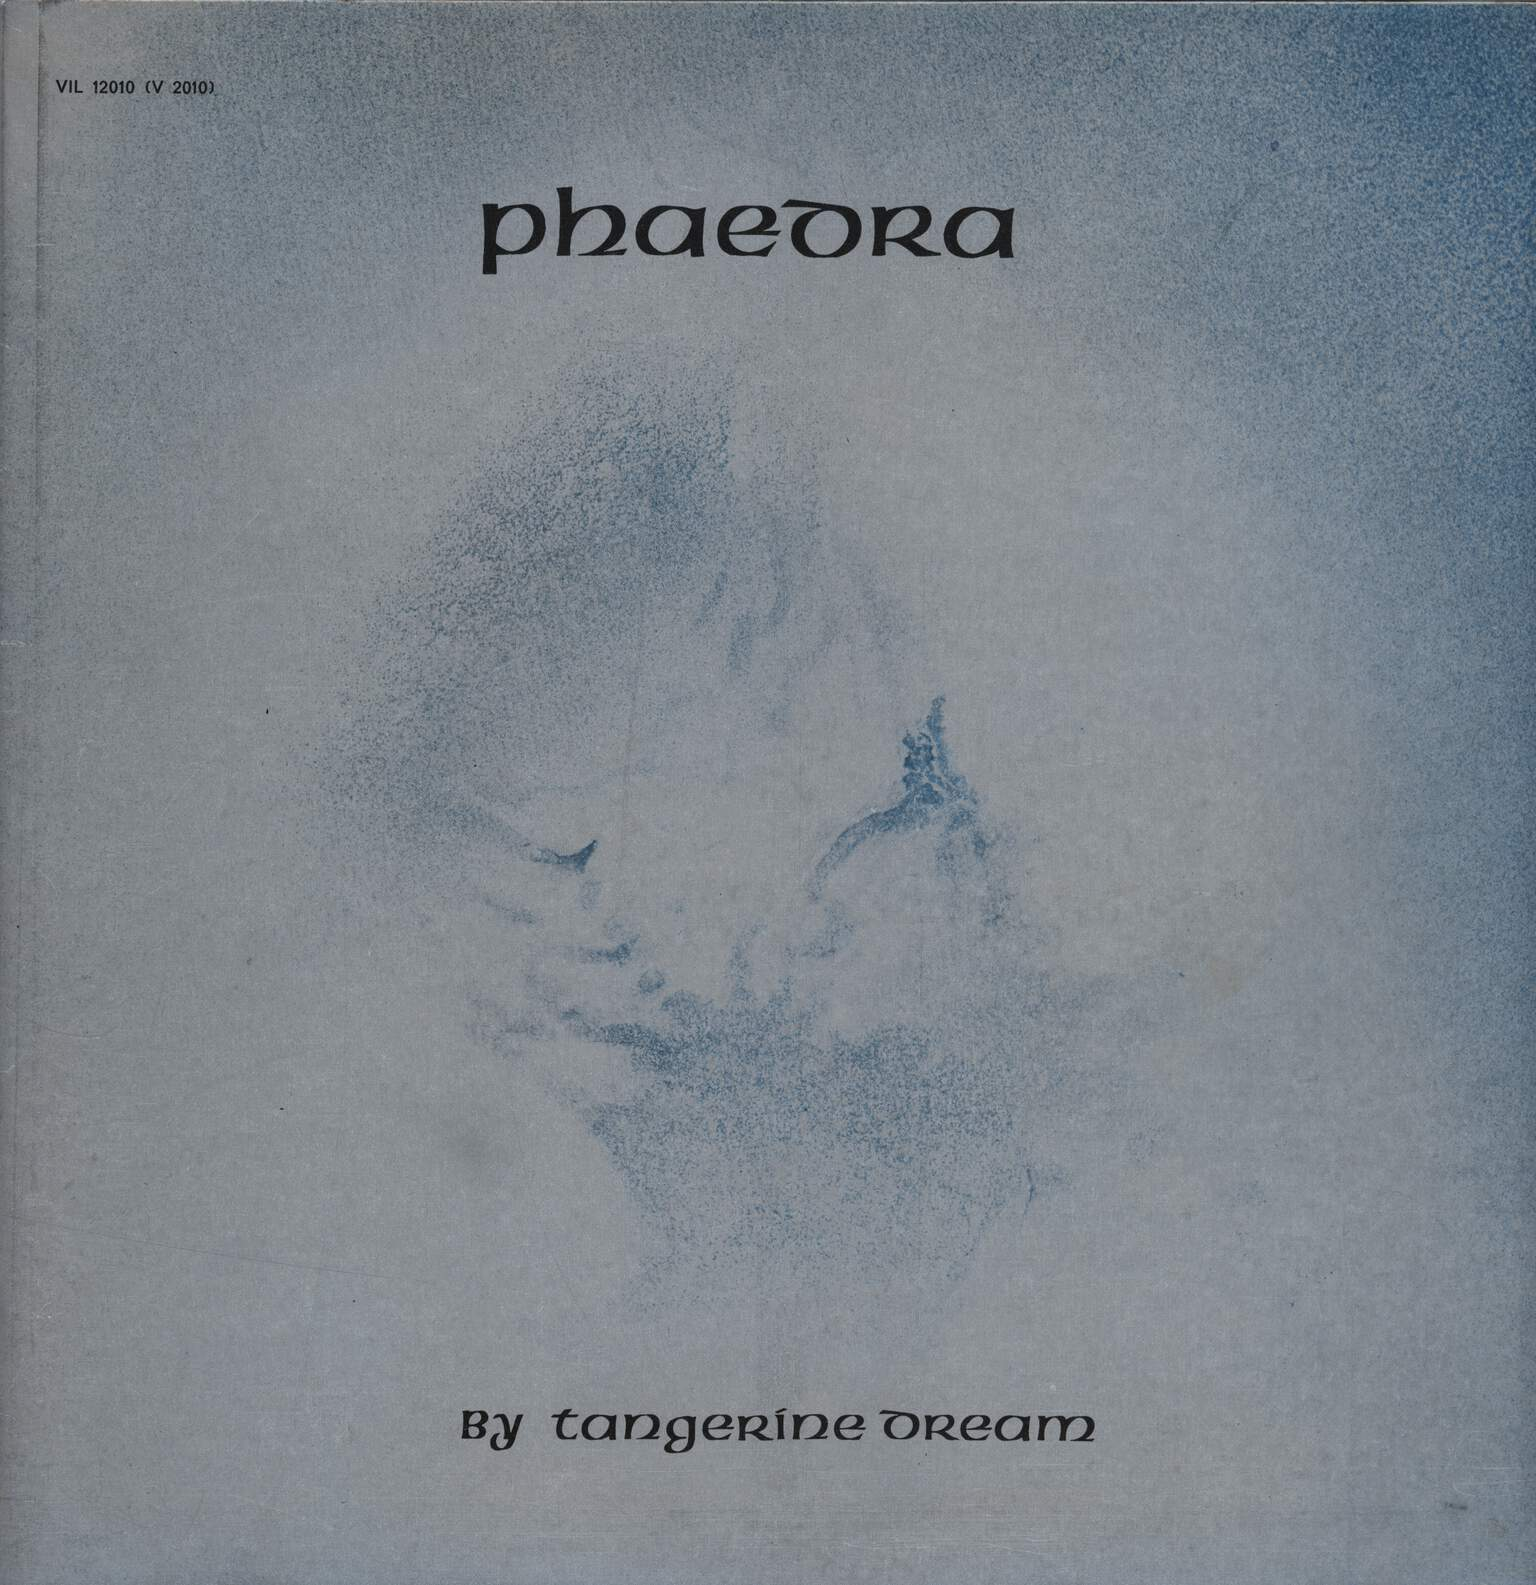 Tangerine Dream: Phaedra, LP (Vinyl)